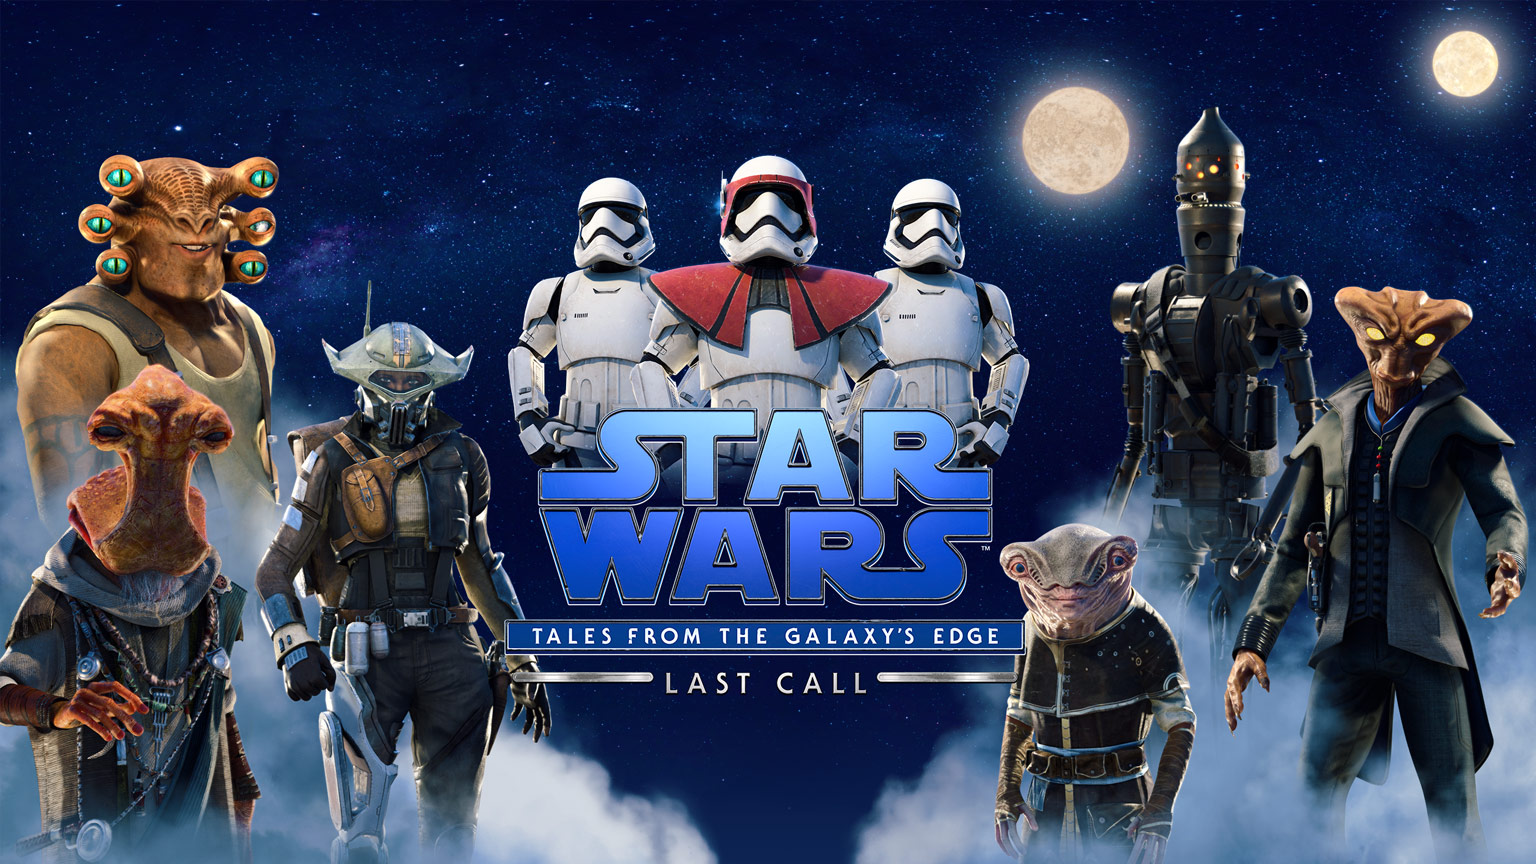 """Im Test: Star Wars – Tales from the Galaxys Edge """"Last Call"""" DLC (Ohne Spoiler)"""